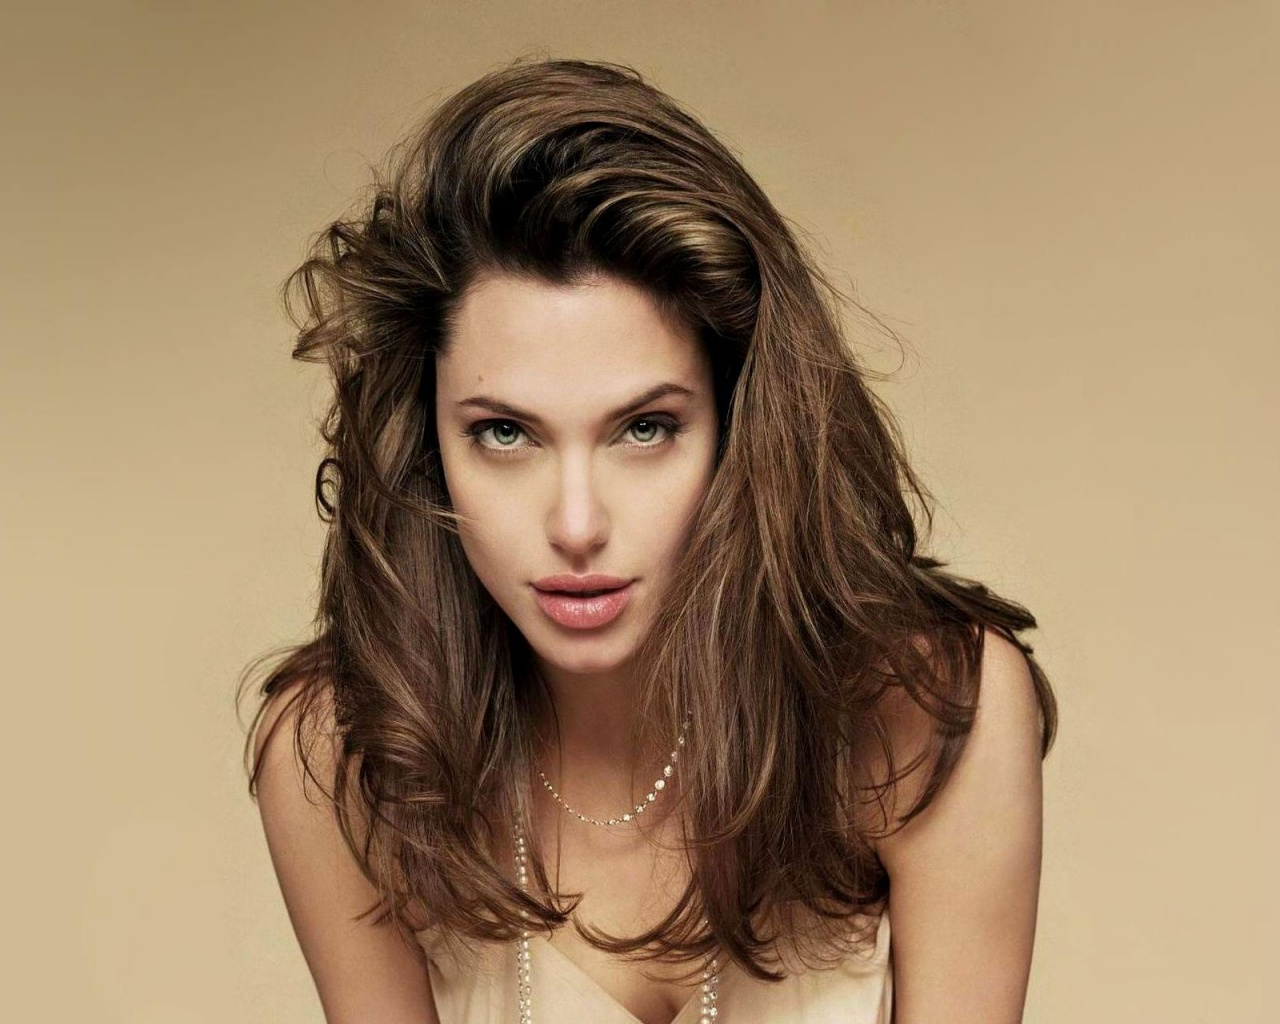 Angelina Jolie Real Nude Pics fast pics2: hot and hd nude real sexy wallpapers of angelina